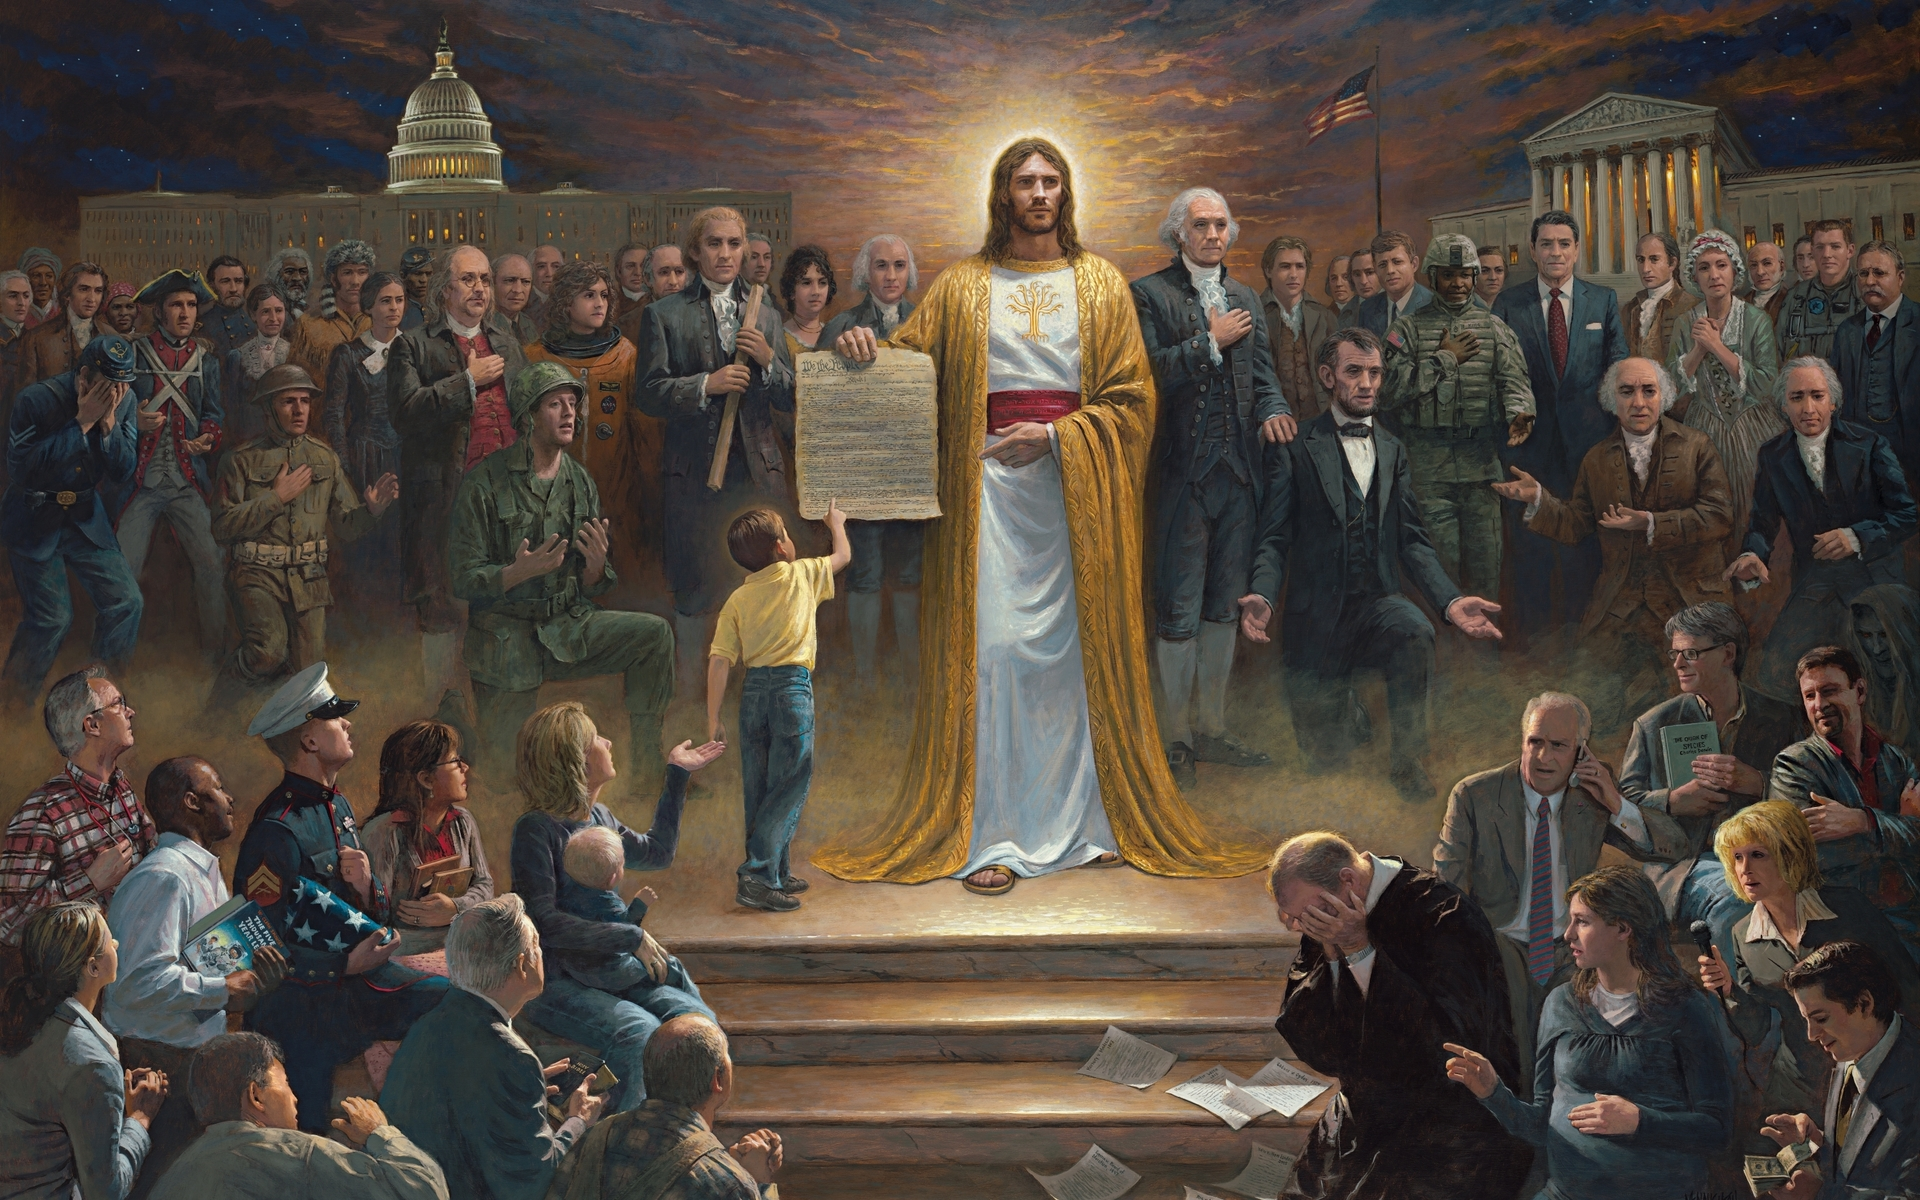 the threat of jesus christ to the political positions of the romans and jewish authorities As the jewish leaders reasoned, was a political one, not a spiritual one they did not seek to deal with jesus in any way prescribed by the old testament law.